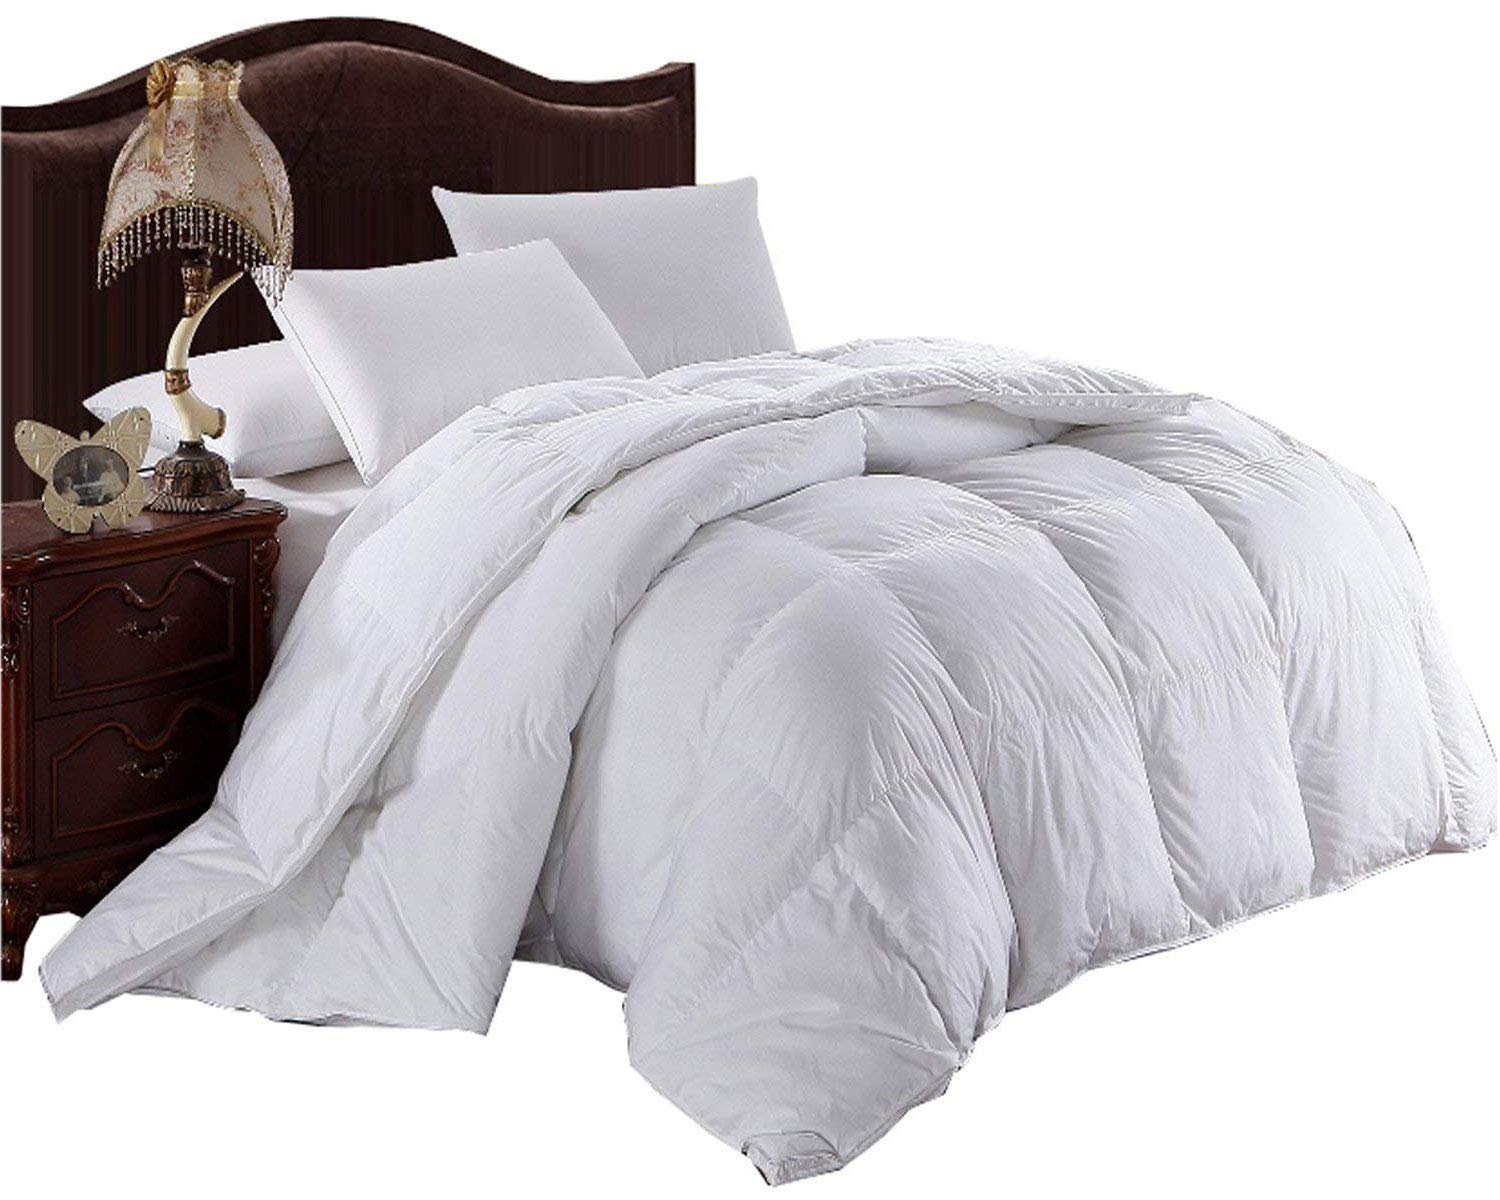 Royal Hotel Goose Feathers and Goose Down Blend Comforter, California King Size, 300 Thread Count 100% Cotton Solid Shell, 600FP, 76 Ounce Fill